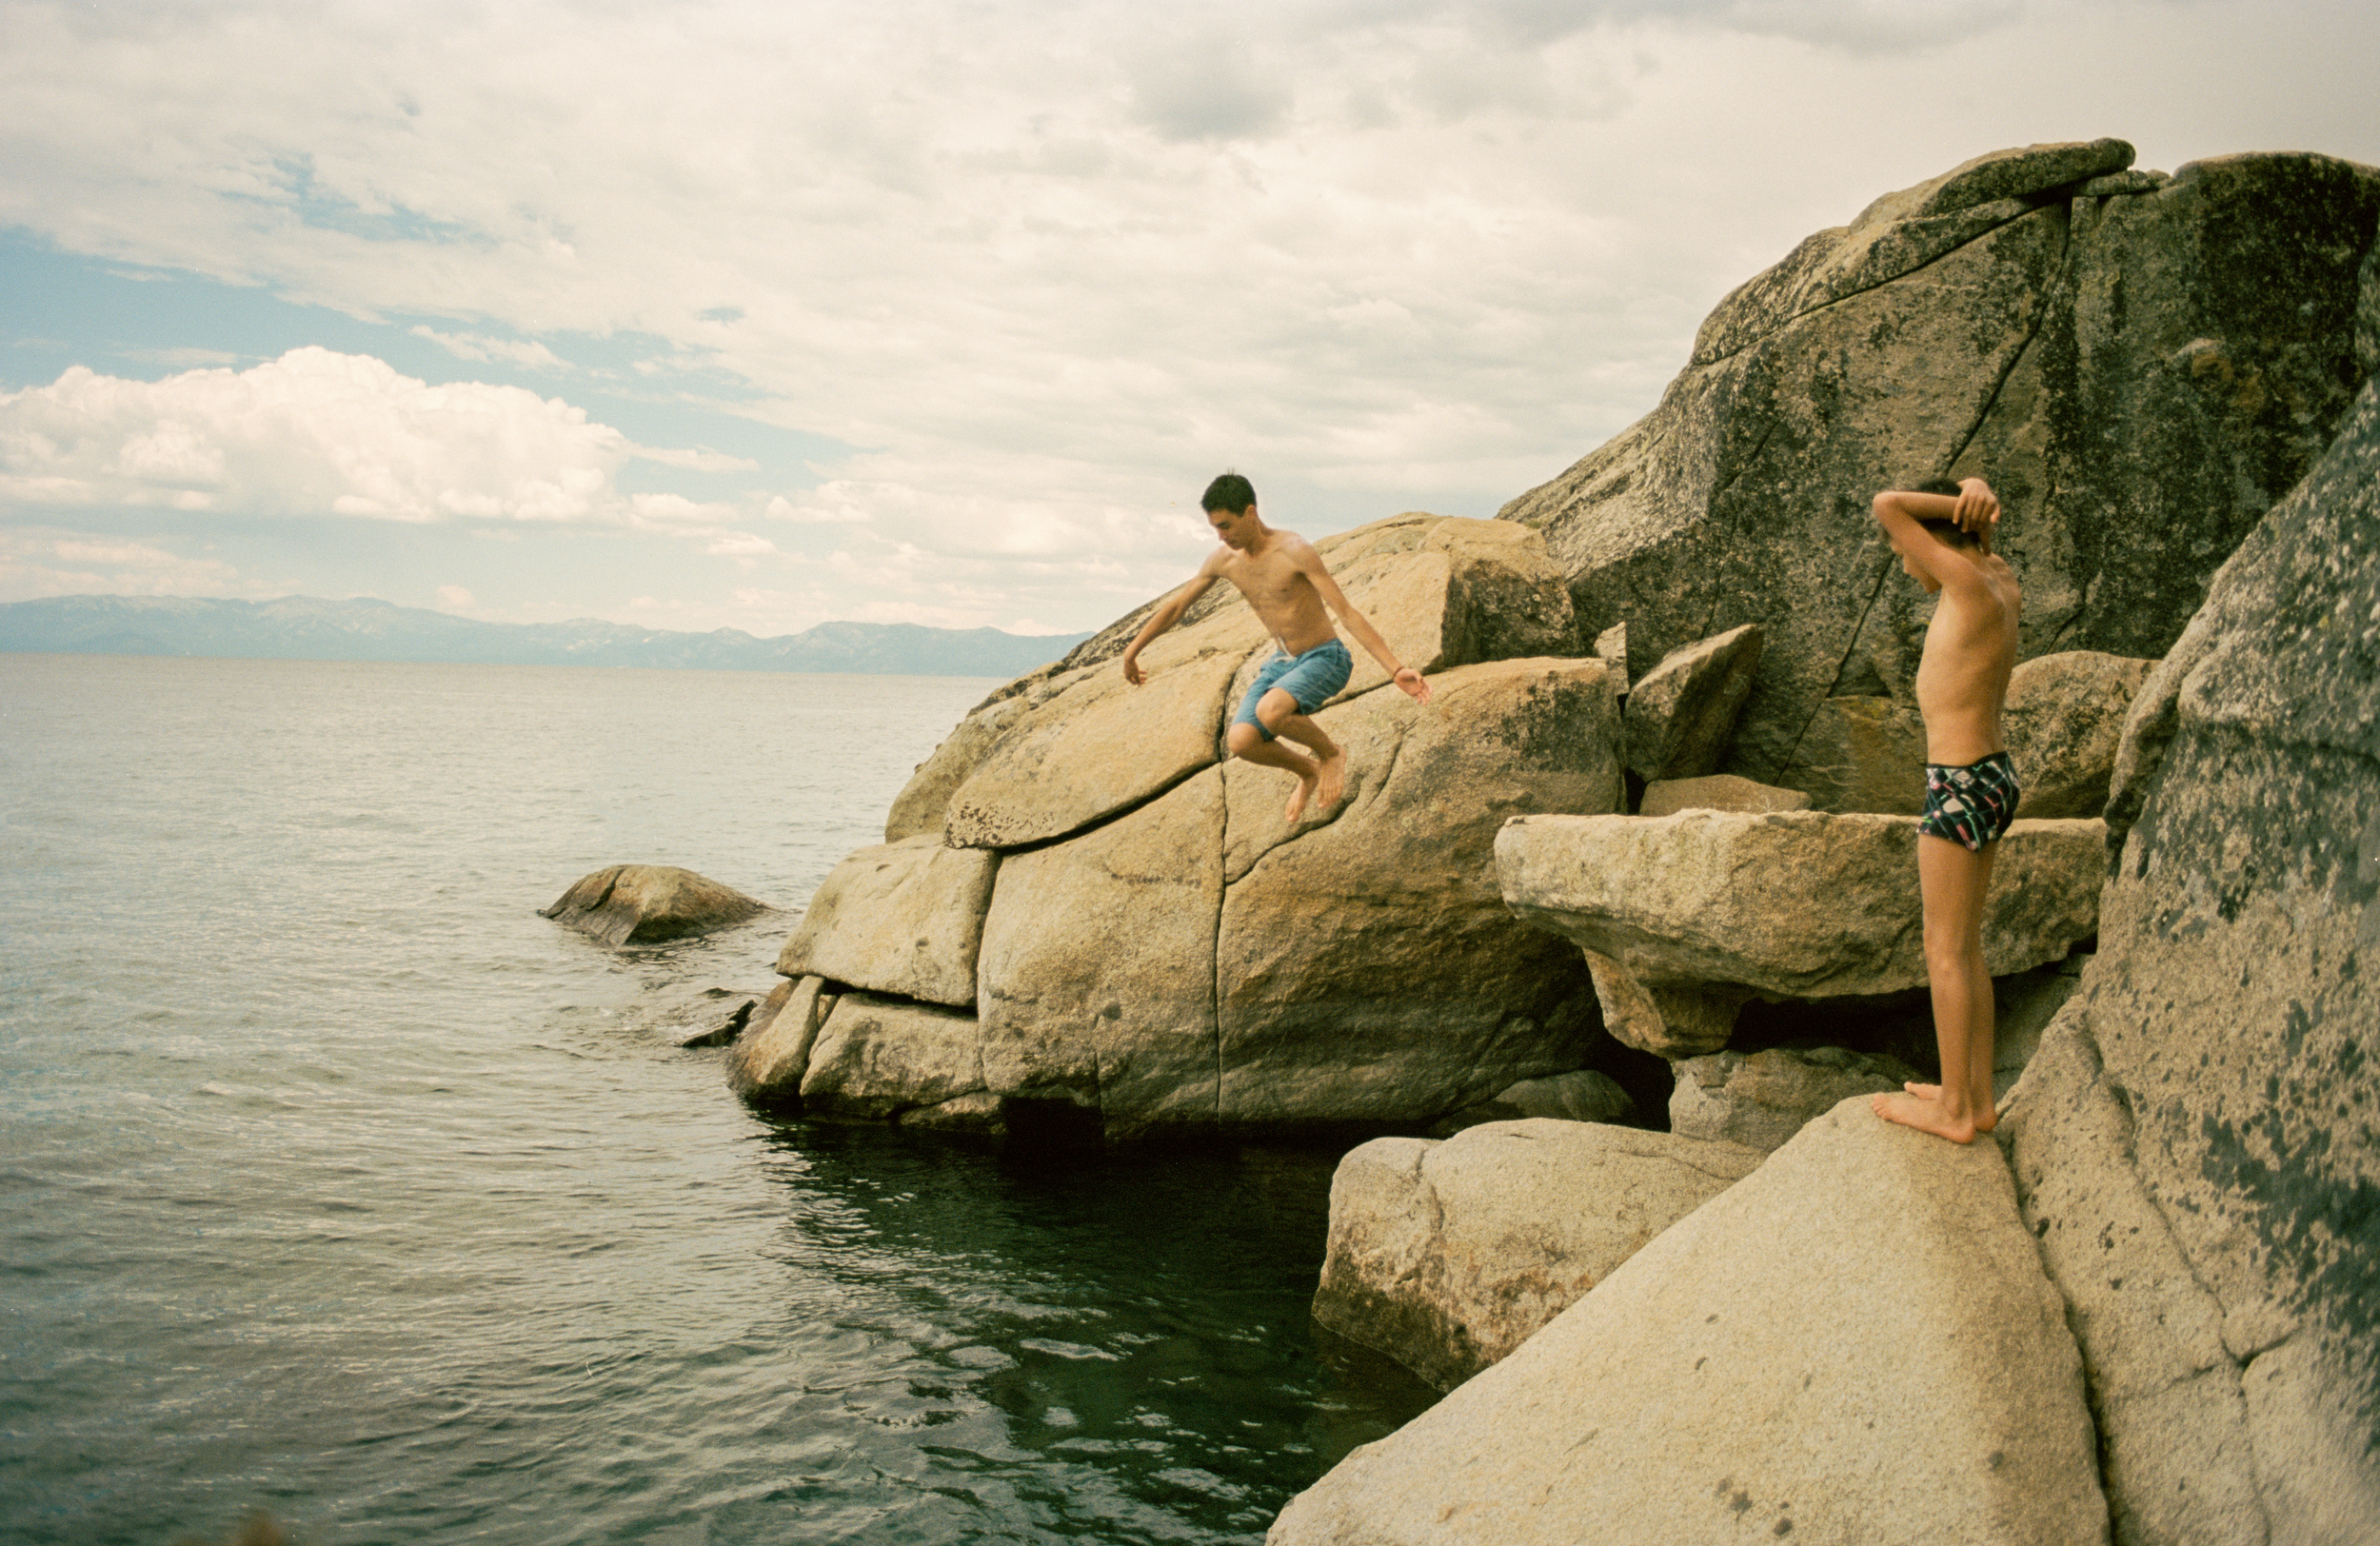 Lake Tahoe, NV / July, 2014